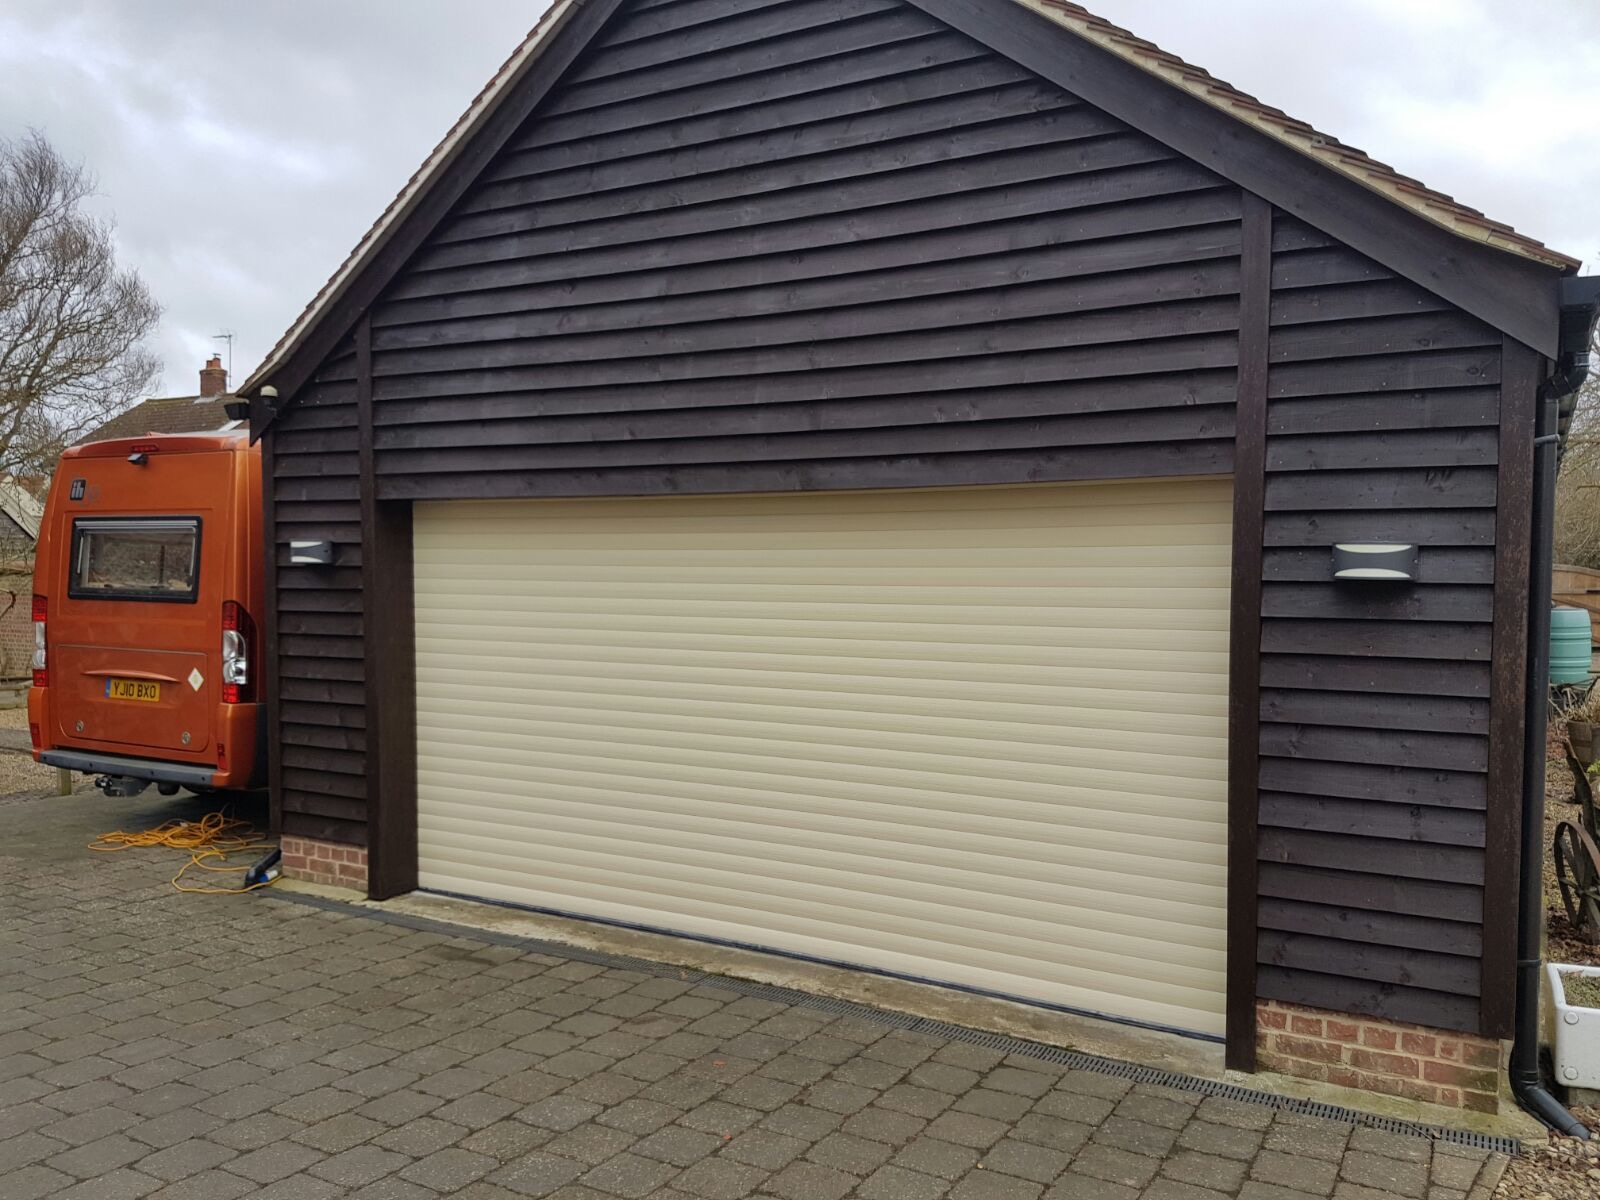 Nice Just A Quick Note To Say Thank You For The Excellent Service Your Company  Gave From Order Placement To Delivery. I Have Fitted The Garage Door And I  Am ...